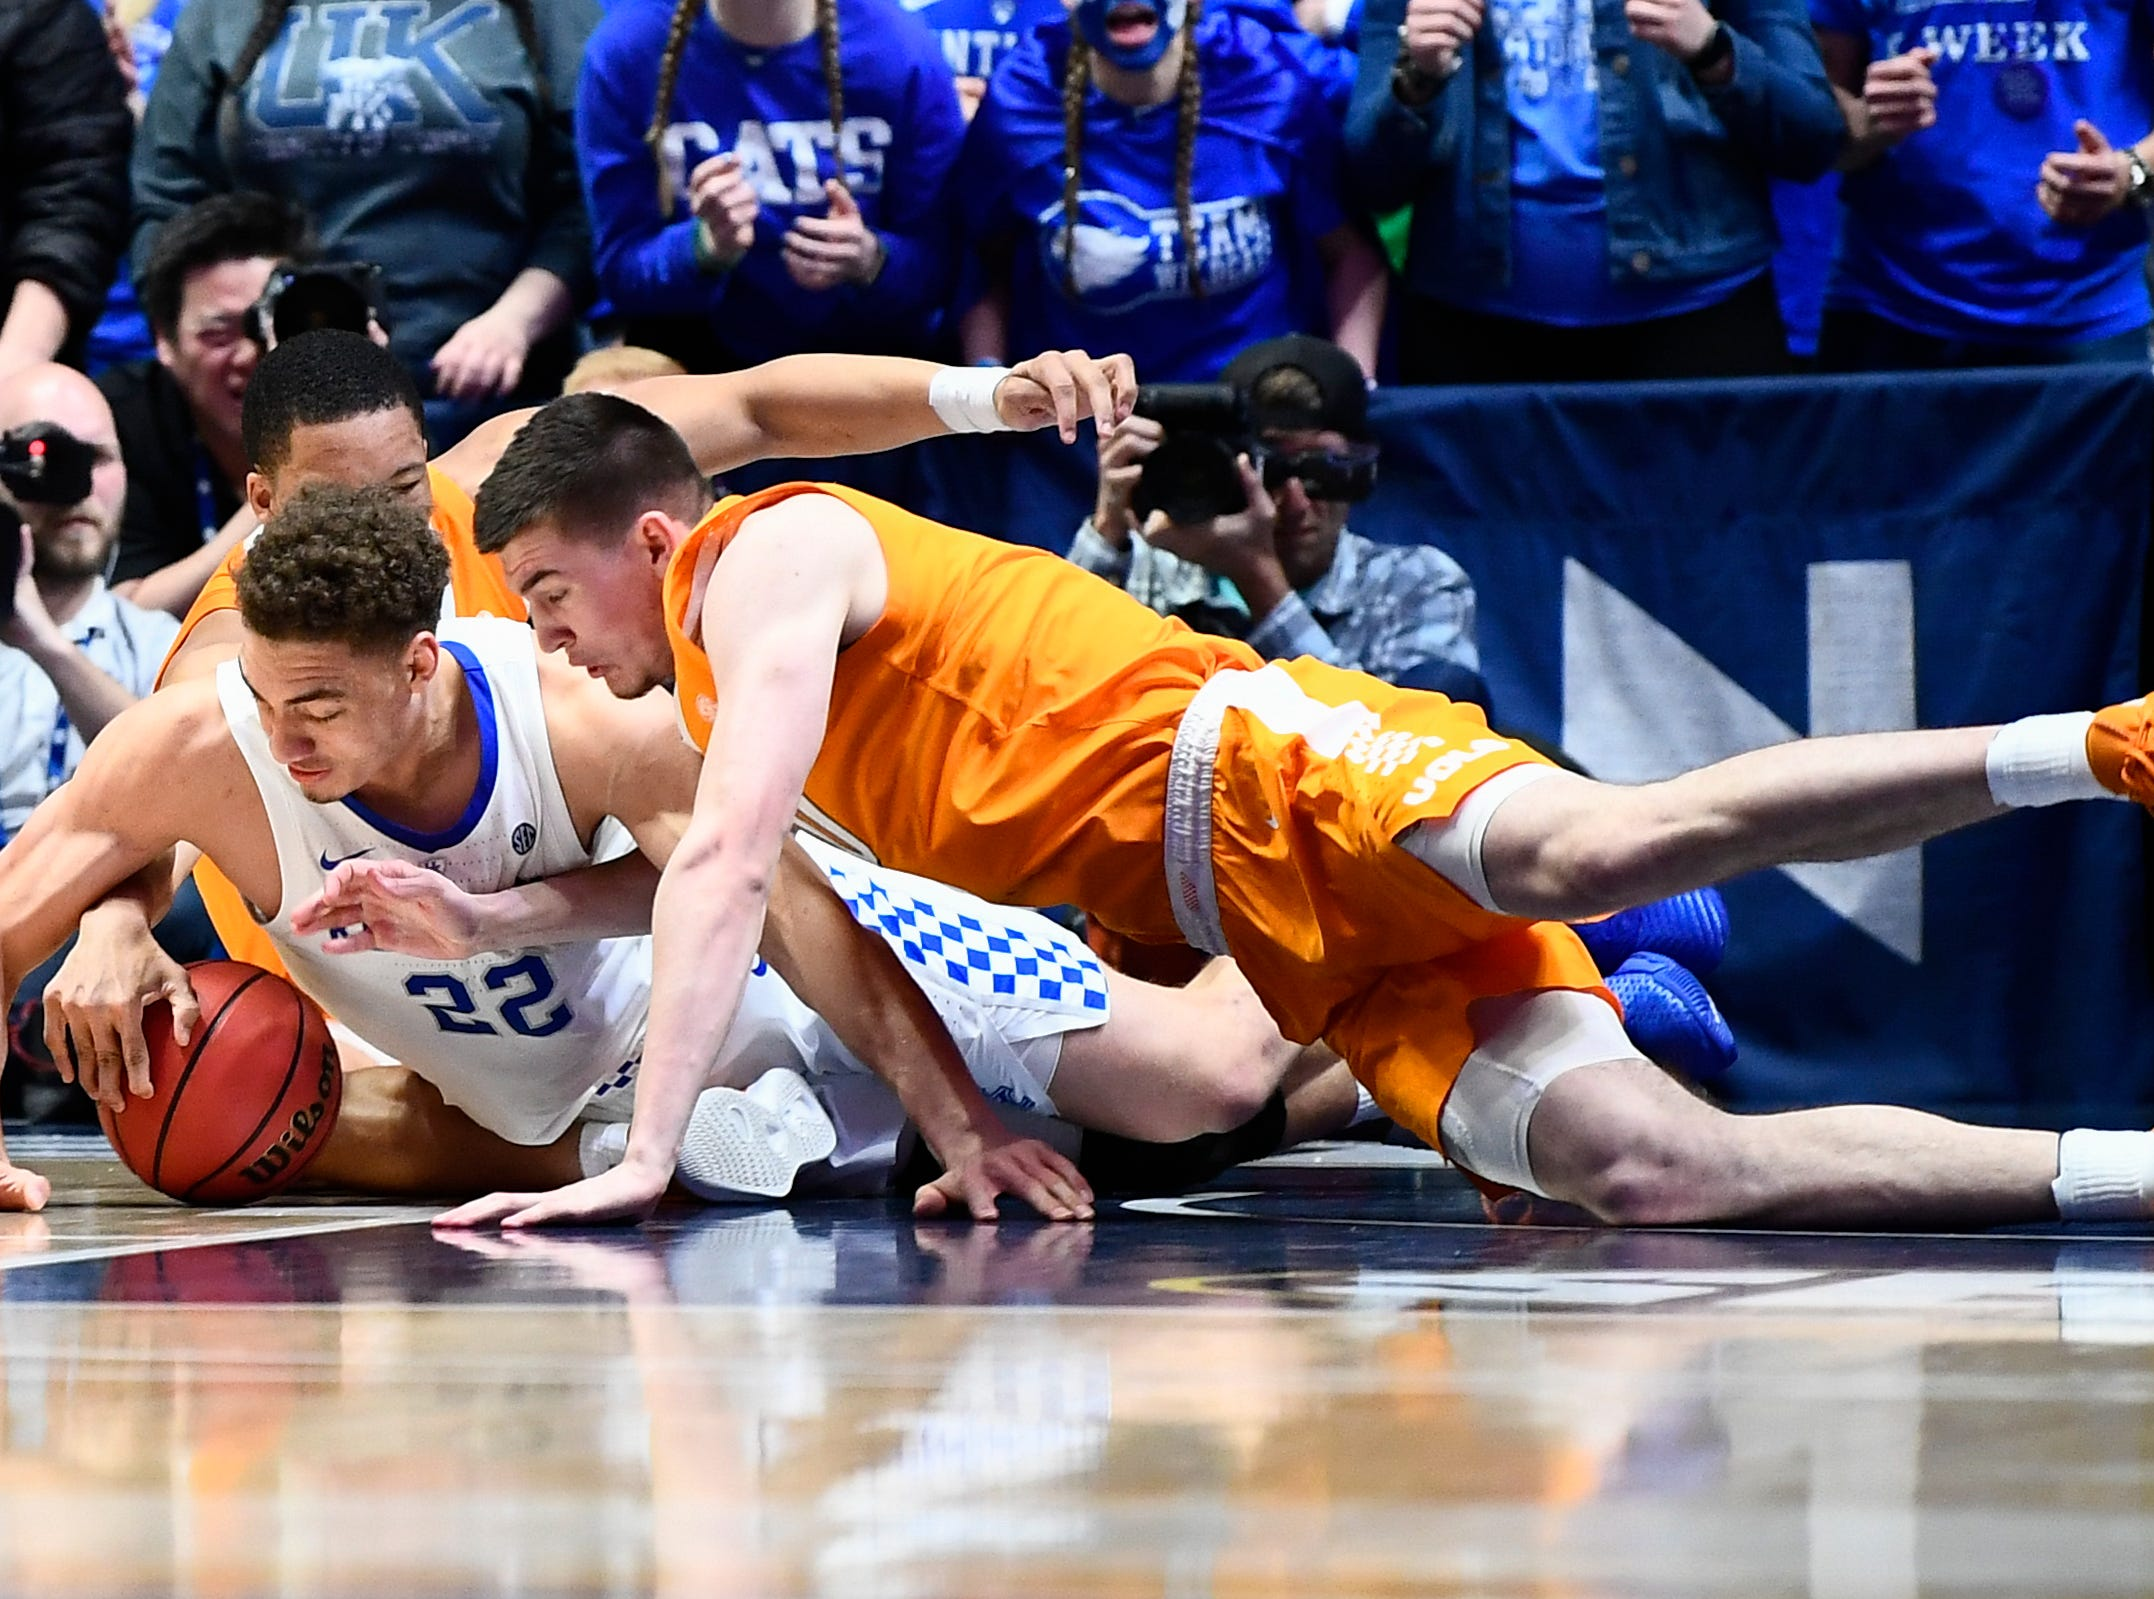 Tennessee forward John Fulkerson (10) dives for the ball with Kentucky forward Reid Travis (22) during the second half of the SEC Men's Basketball Tournament semifinal game at Bridgestone Arena in Nashville, Tenn., Saturday, March 16, 2019.